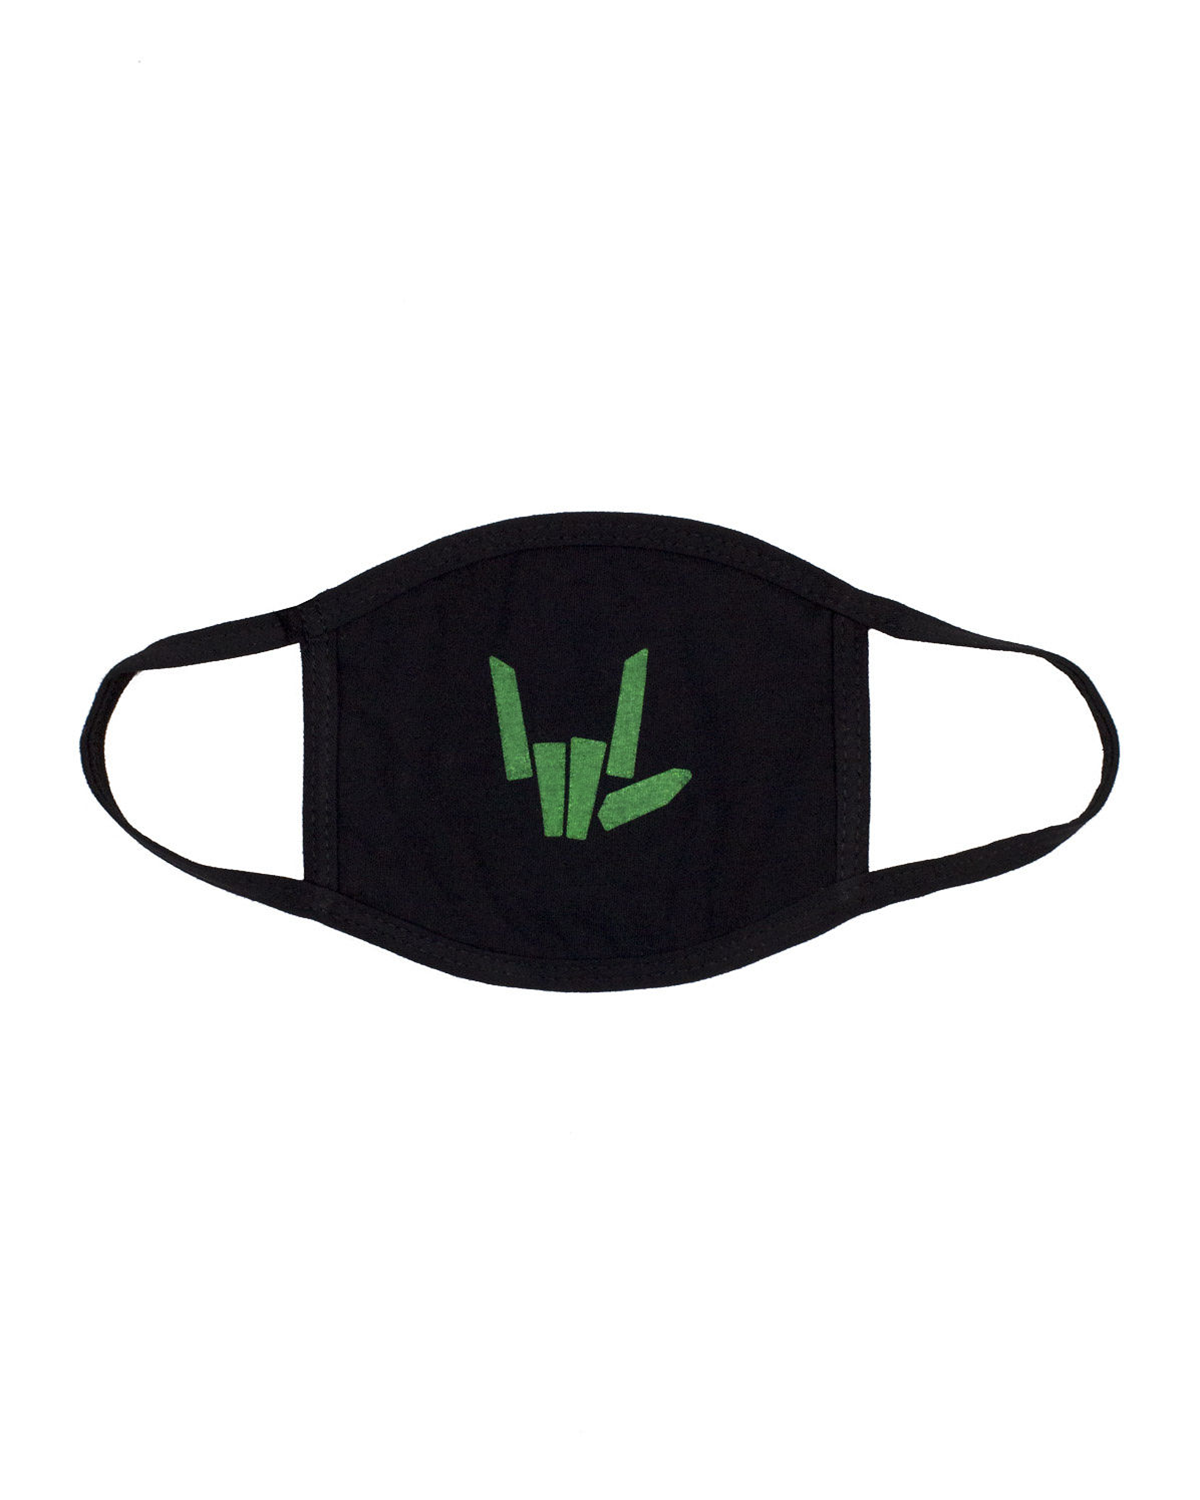 'Share The Love' Youth Face Mask - Black